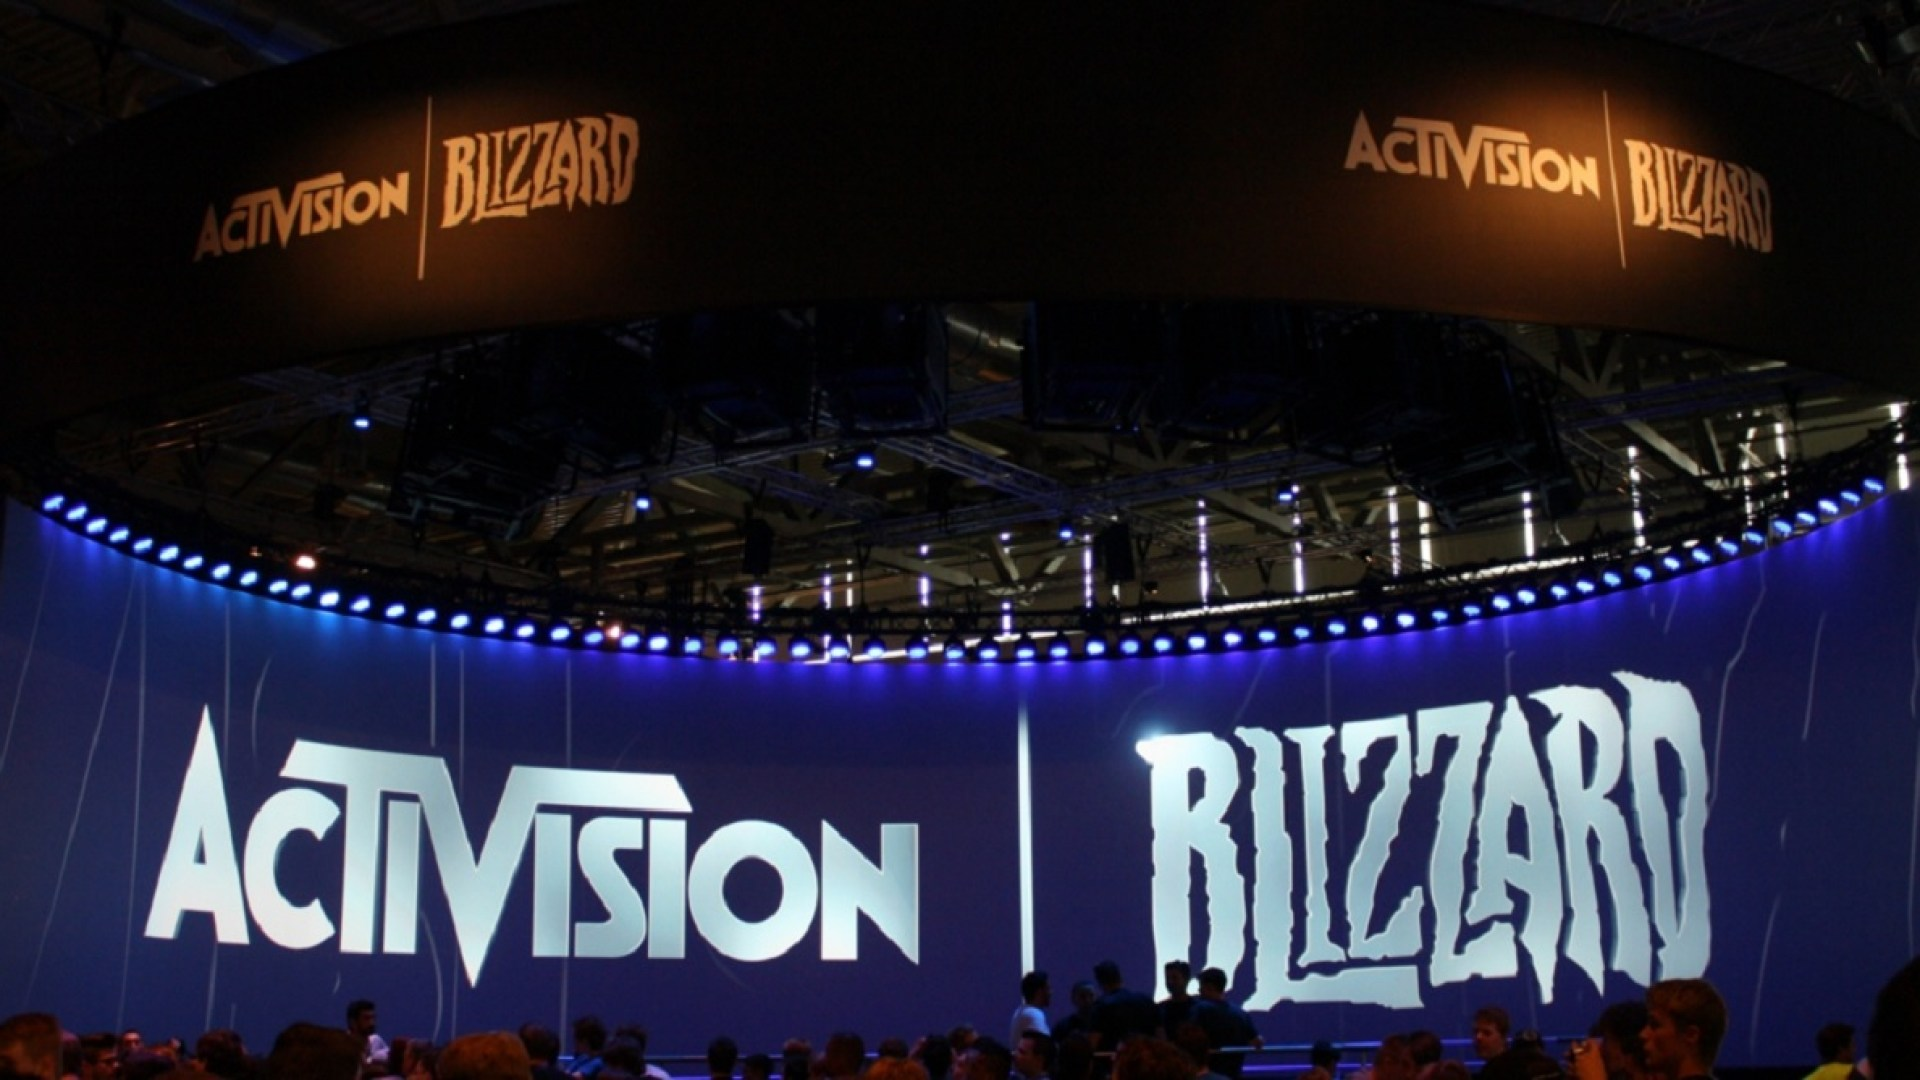 Activision Blizzard is reportedly planning hundreds of layoffs